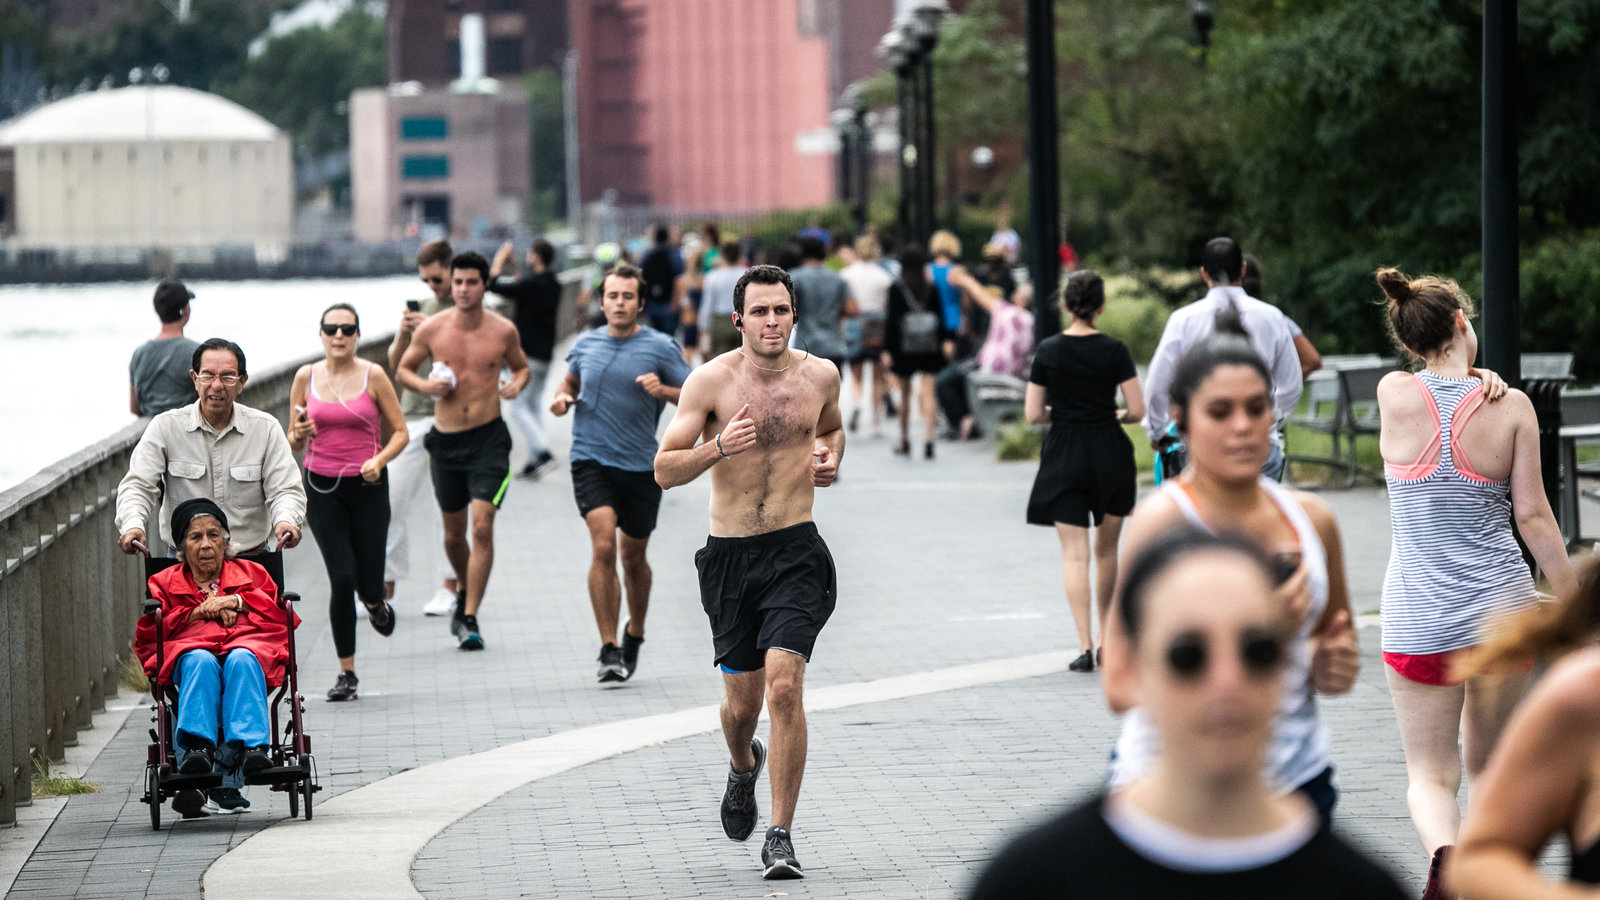 Very Brief Workouts Count Toward 150 Minute Goal New Guidelines Say The New York Times